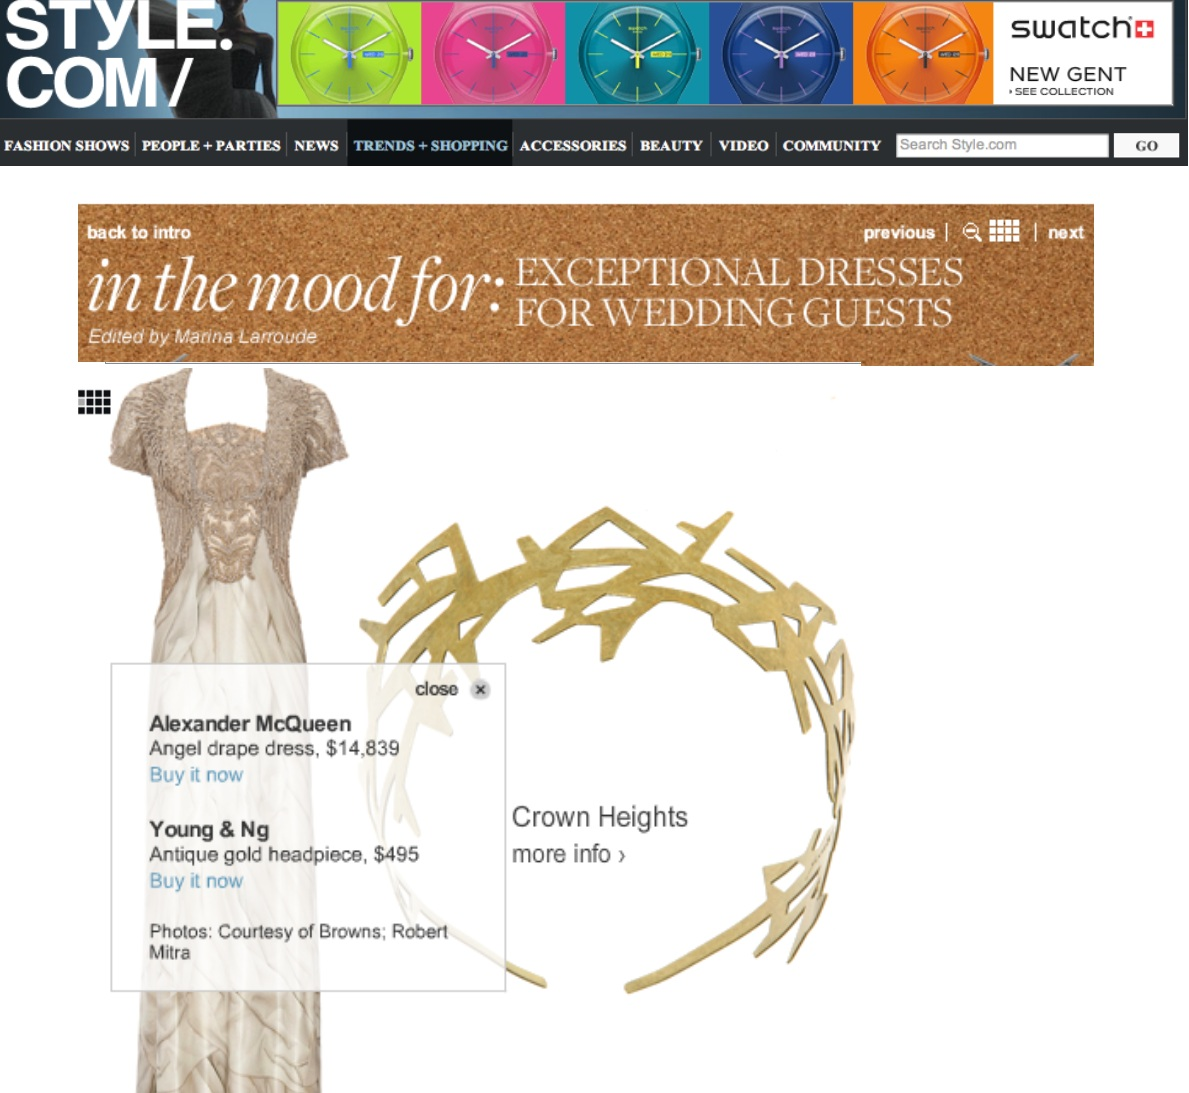 Style.com Features Young&ng Headpiece Paired with Alexander McQueen Dress